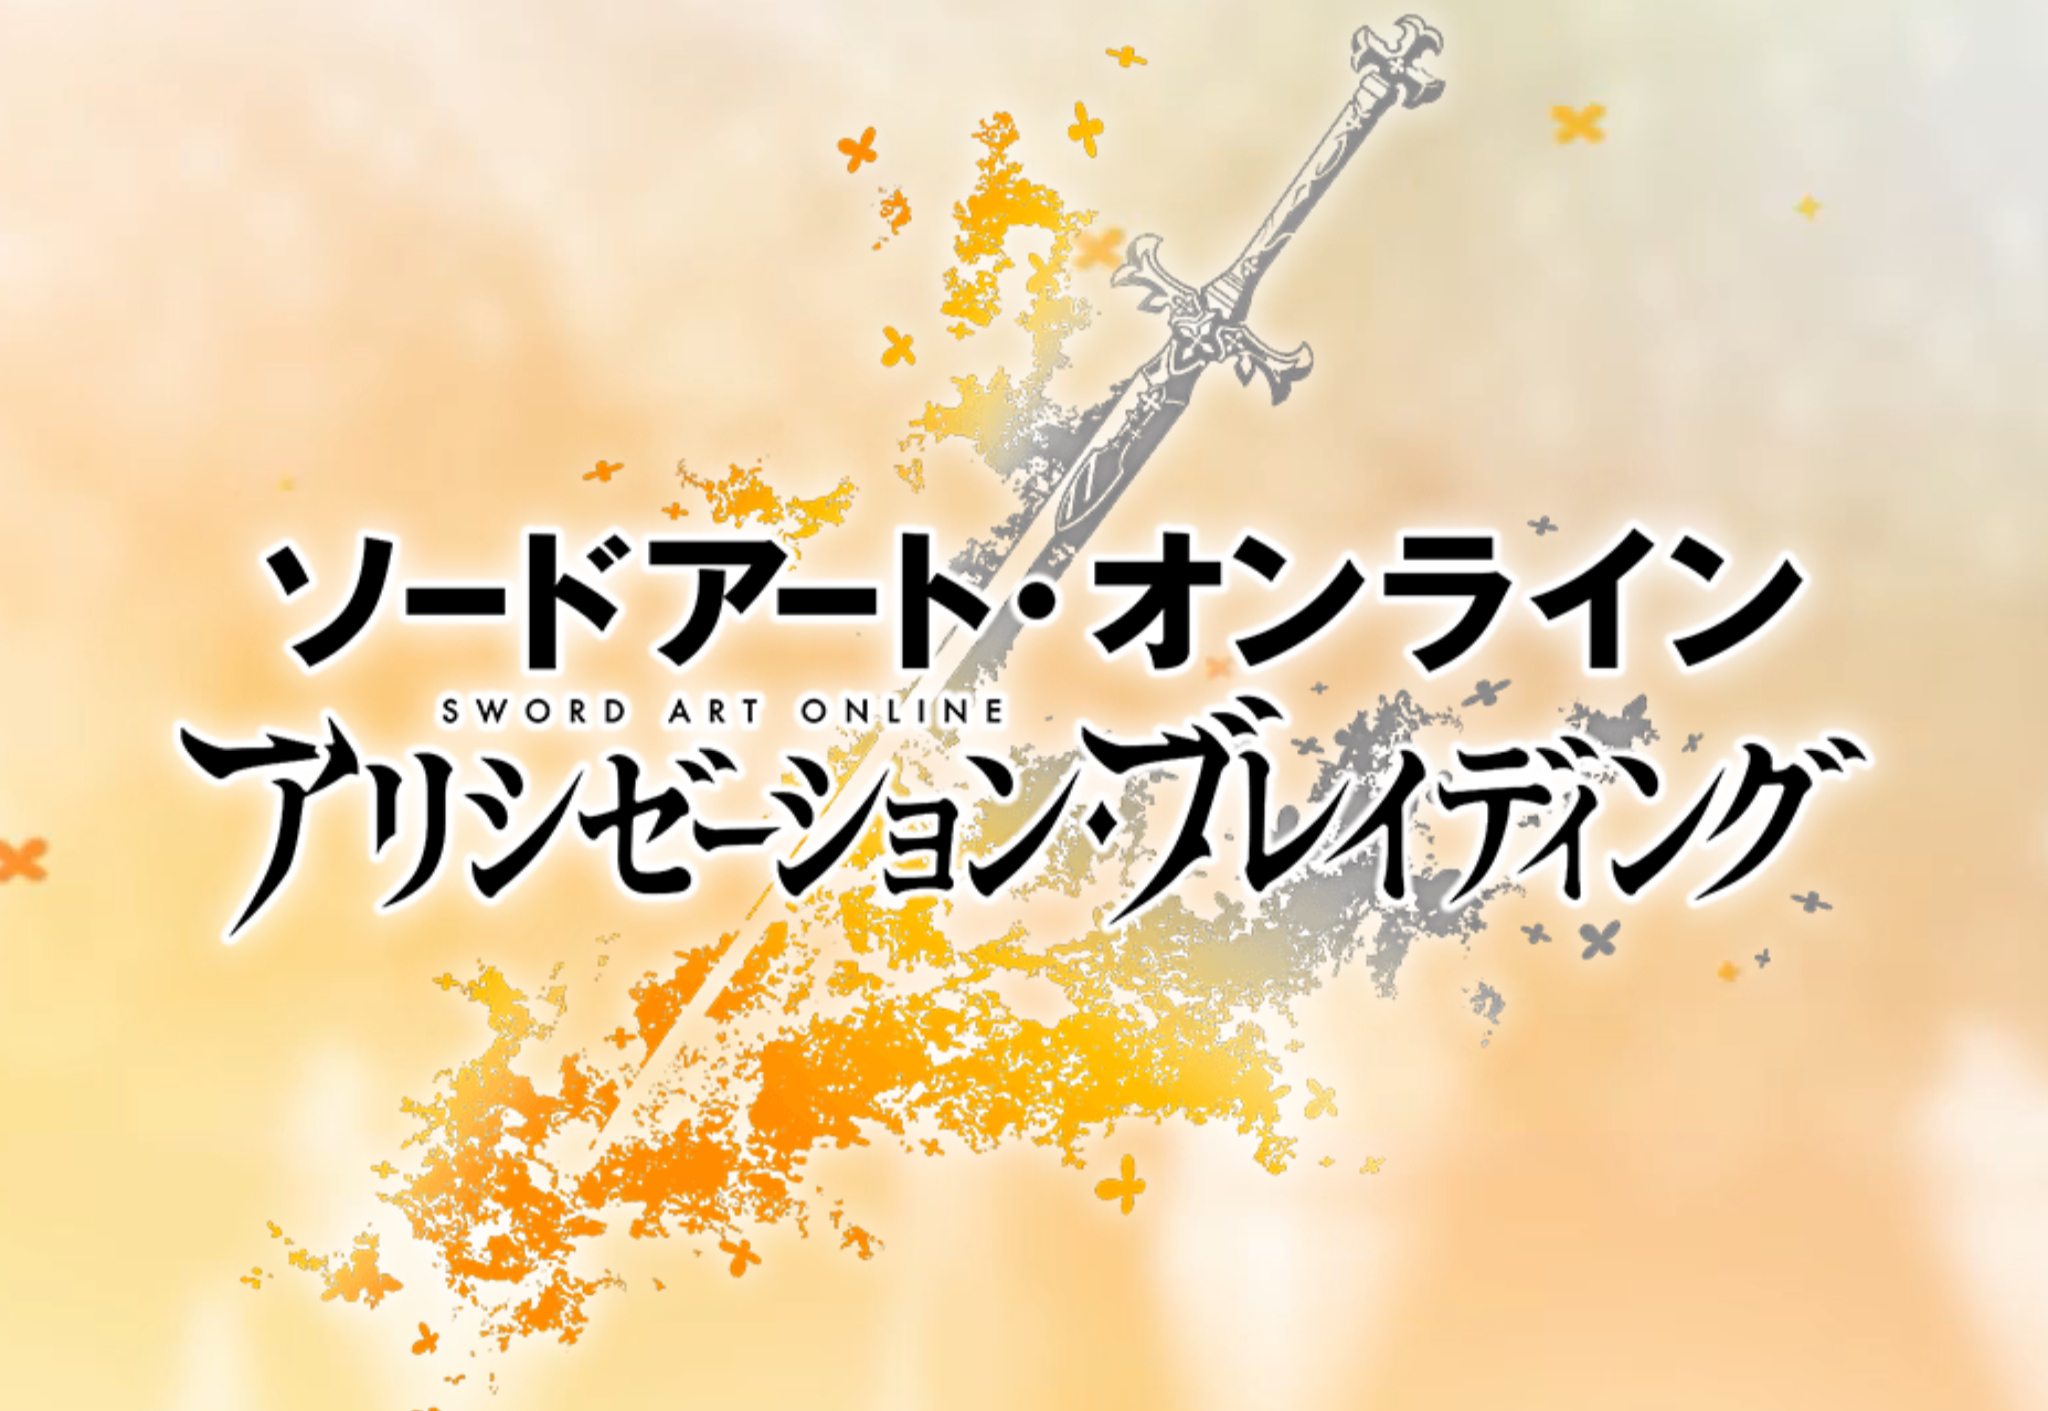 'Sword Art Online Alicization Braiding' Is a New RPG for iOS and Android from Bandai Namco Entertainment